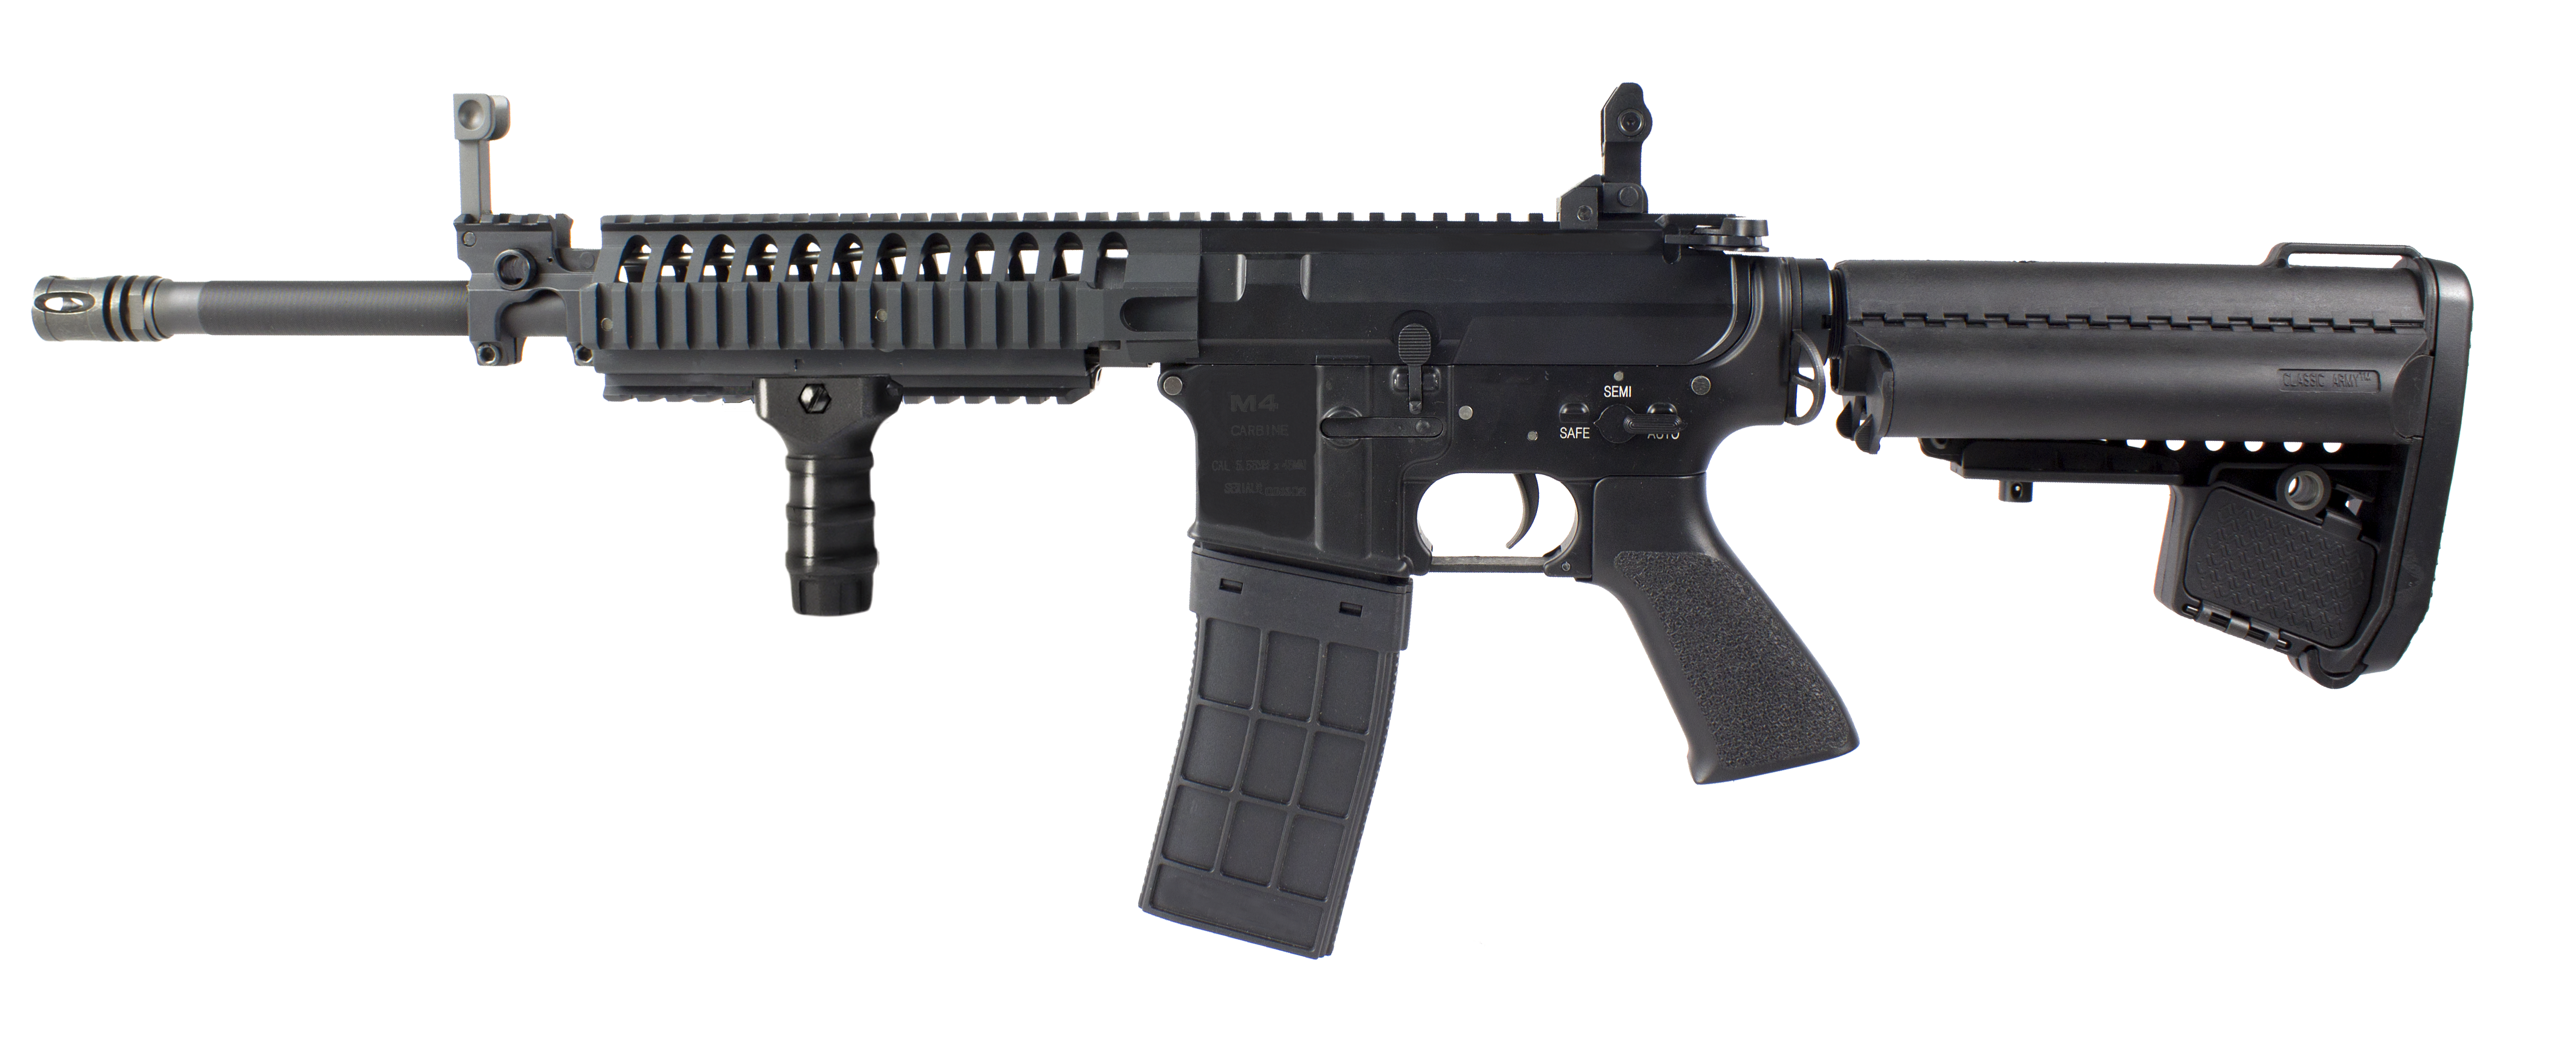 caecr 4 enhanced combat rifle 4 products classic army